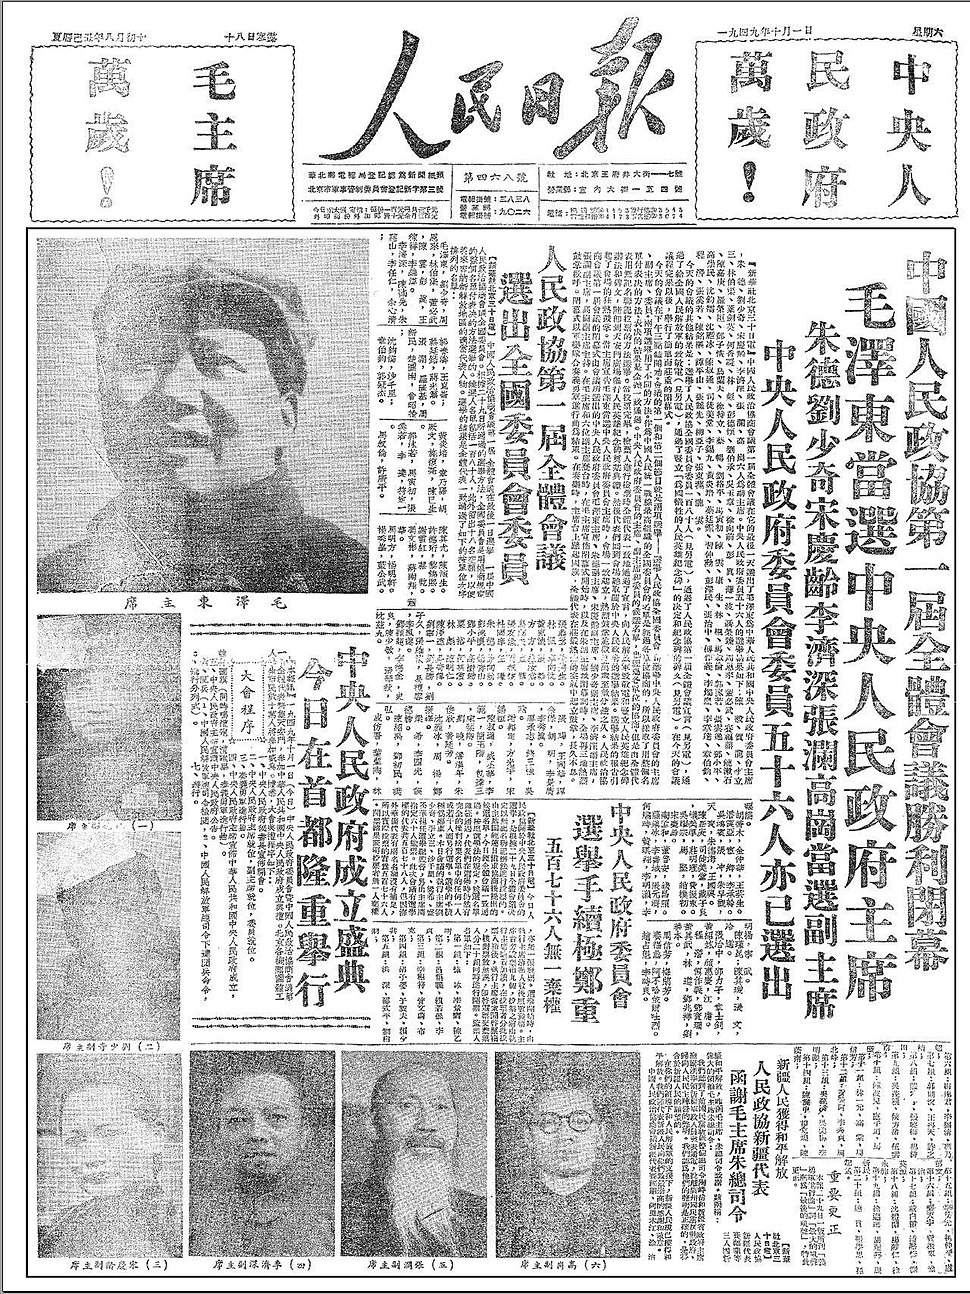 People's daily 1 Oct 1949